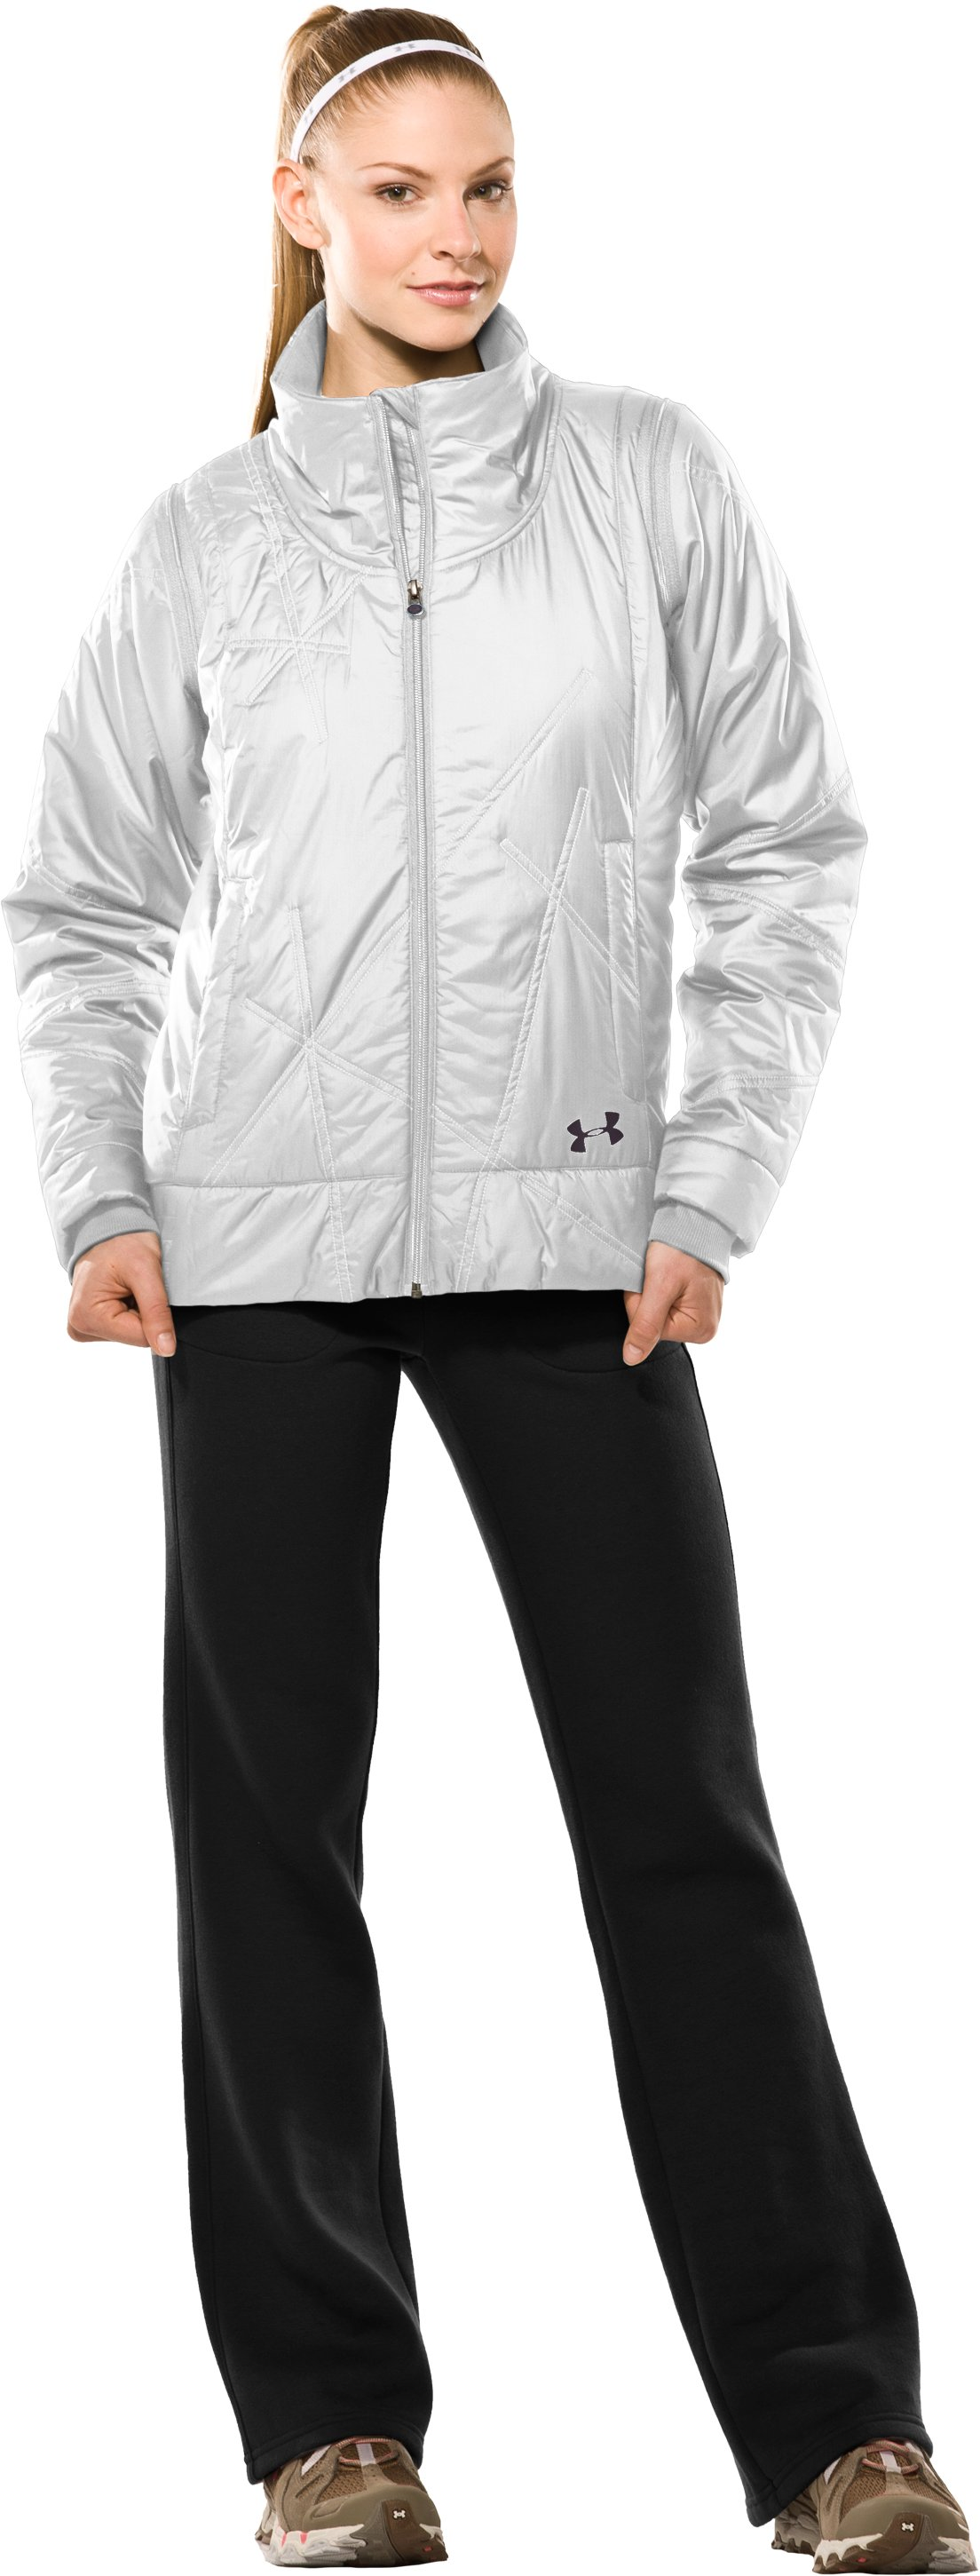 Women's Choice ArmourLoft® Jacket II, White, Front